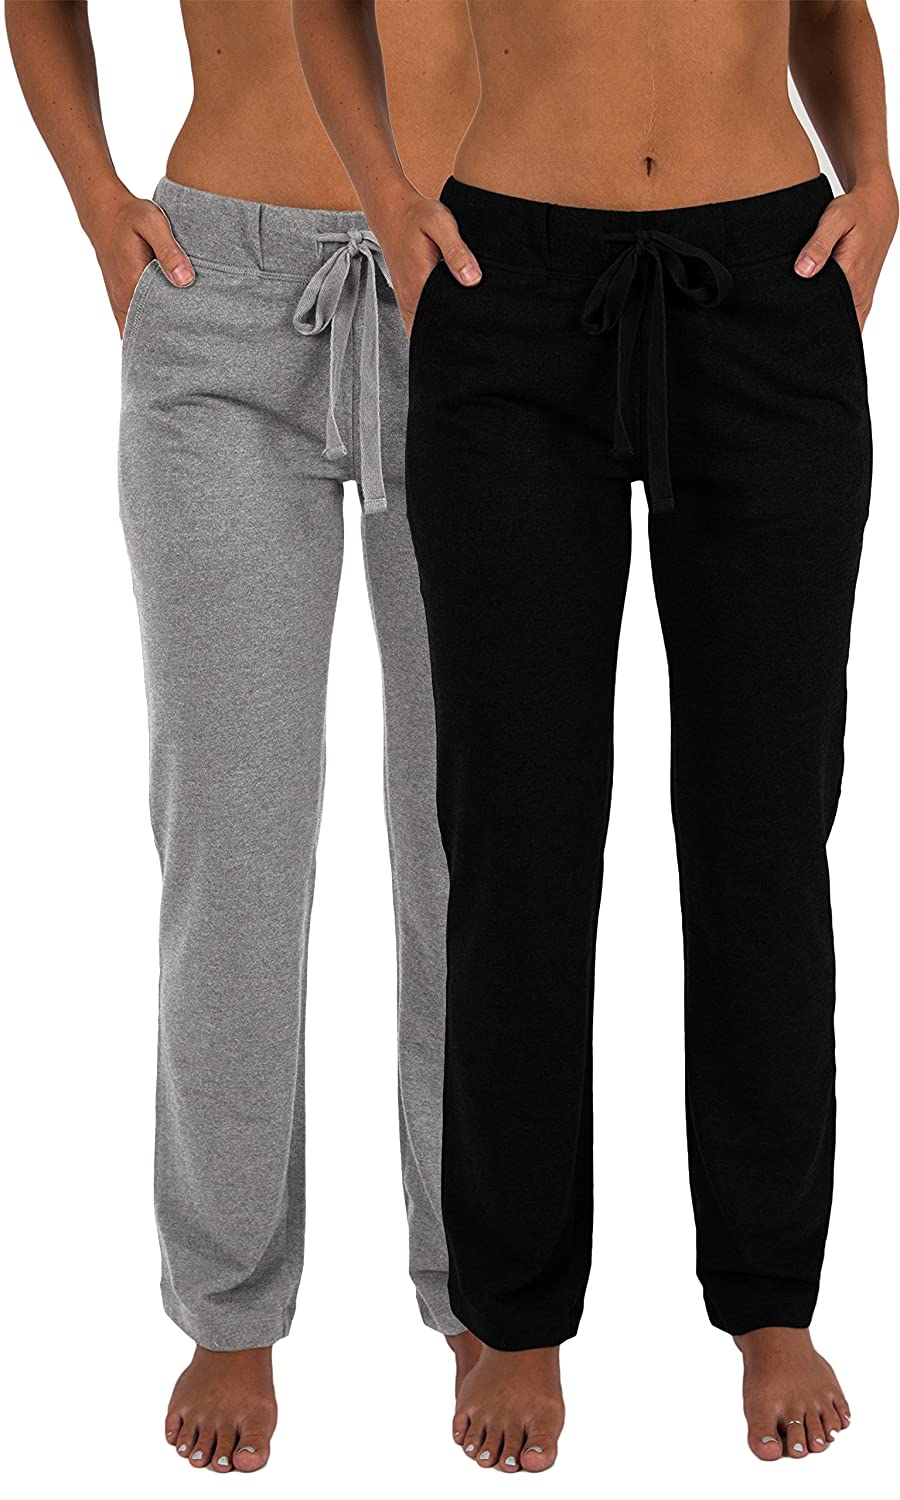 2 Pack Black & Grey Sexy Basics Women's 2 Pack Ultra Soft French Terry Cotton Drawstring Yoga Lounge Long Pants